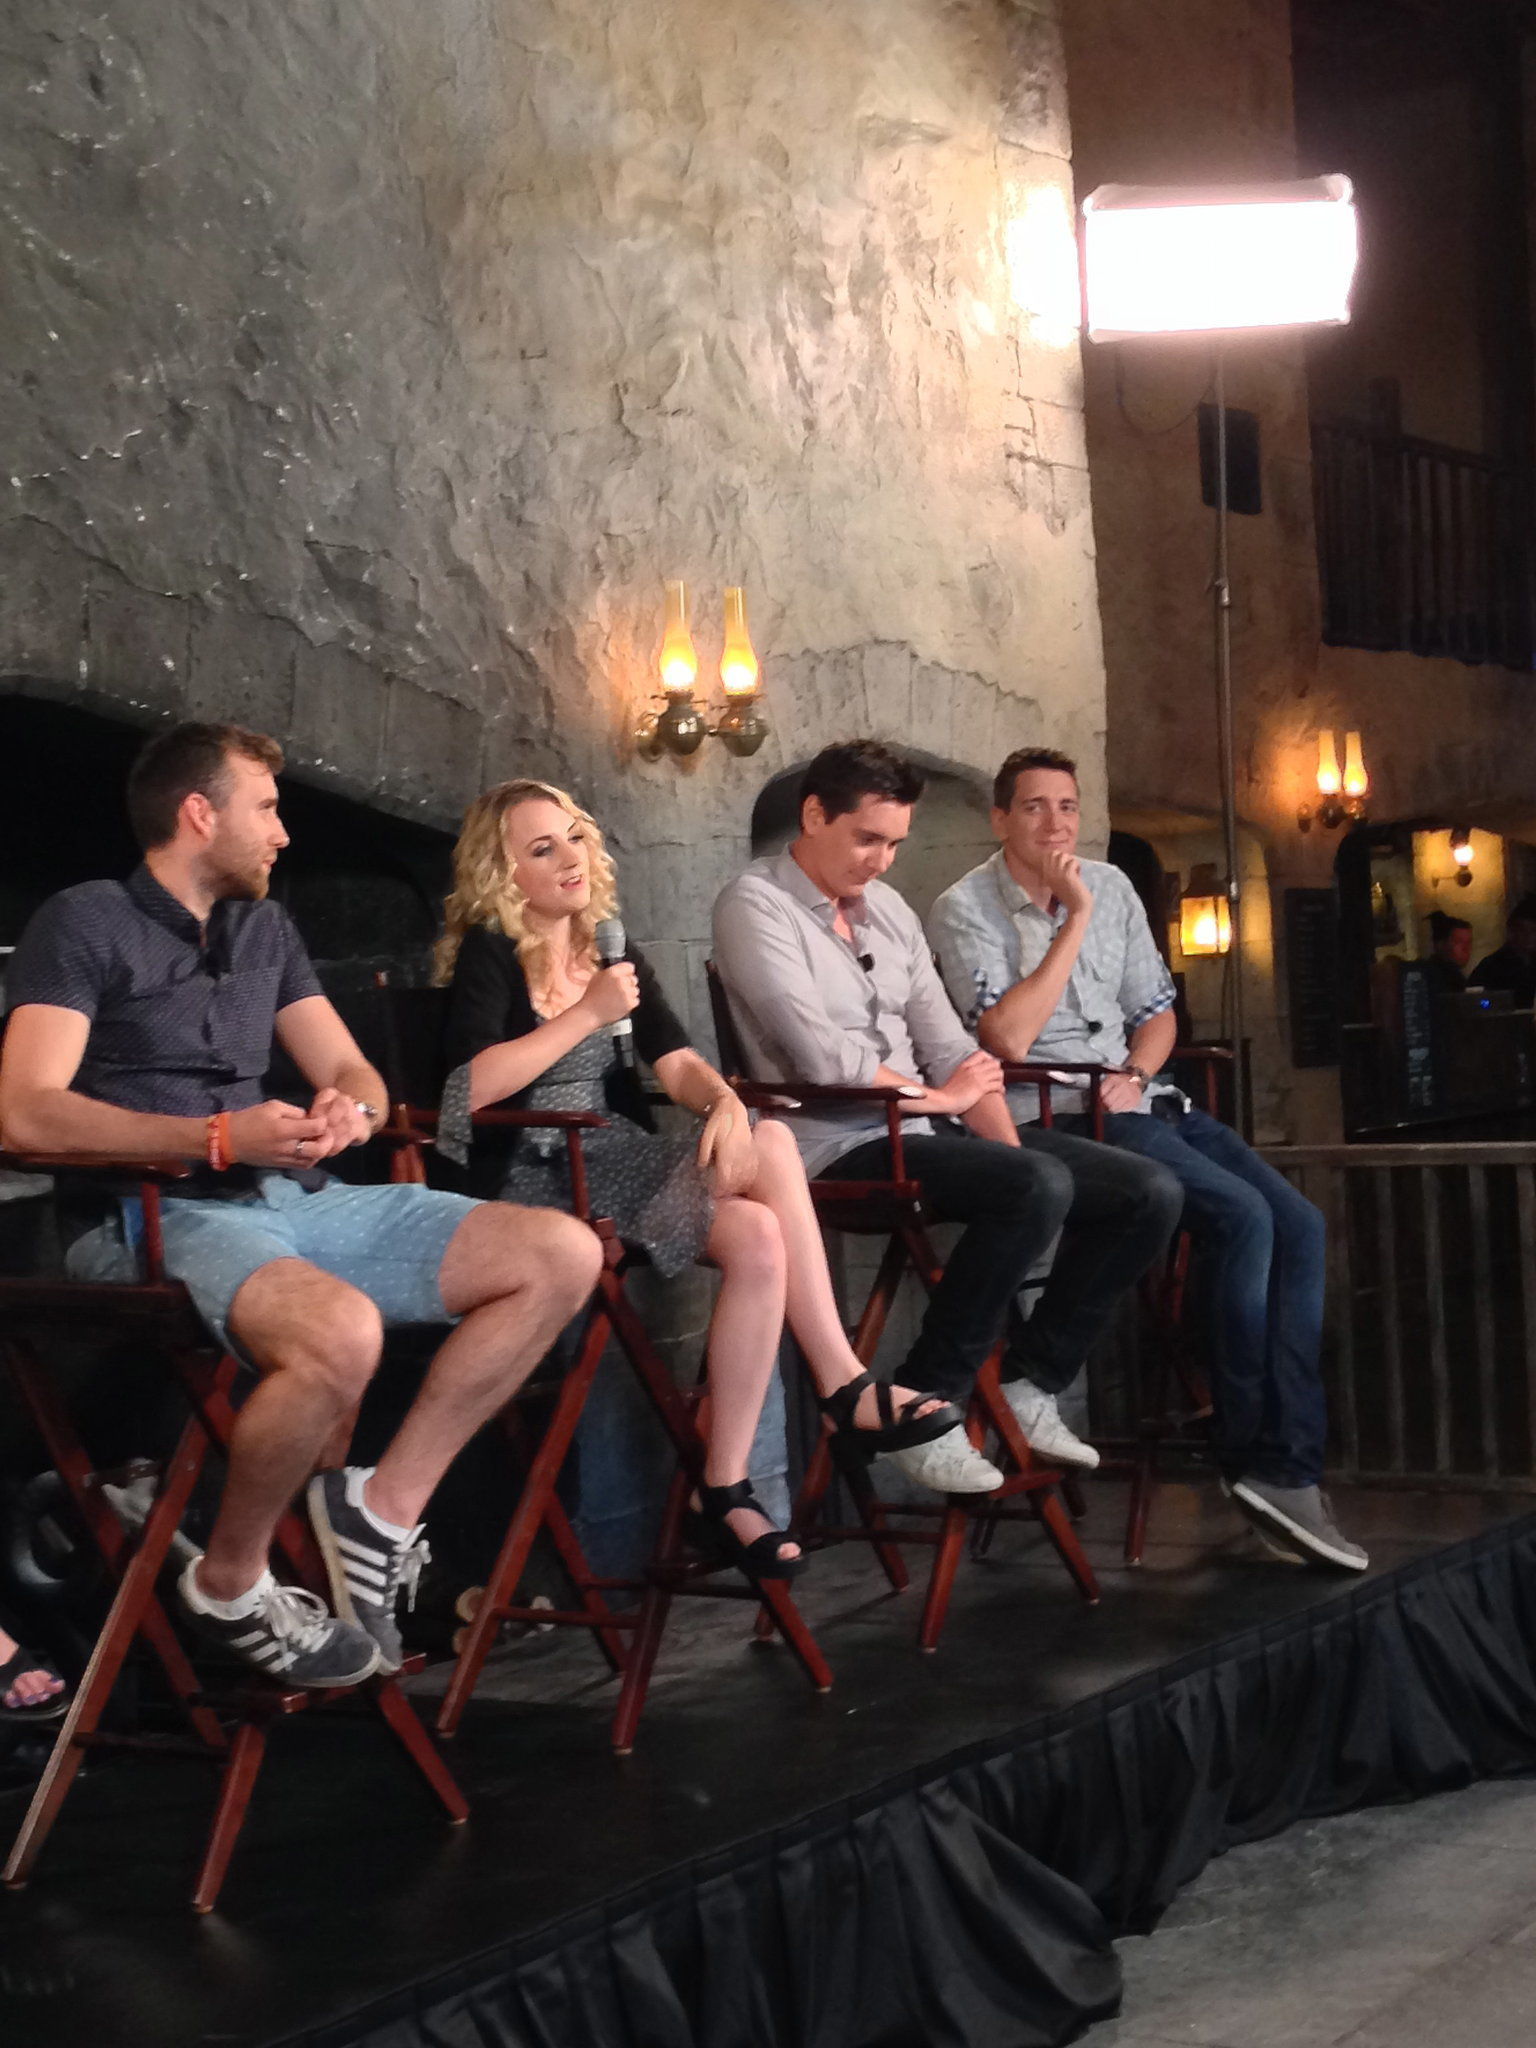 "Evanna Lynch explained that Diagon Alley is as much for fans of the Harry Potter films as it is for fans of the book series. She said, ""You can just walk through the books in this land."""